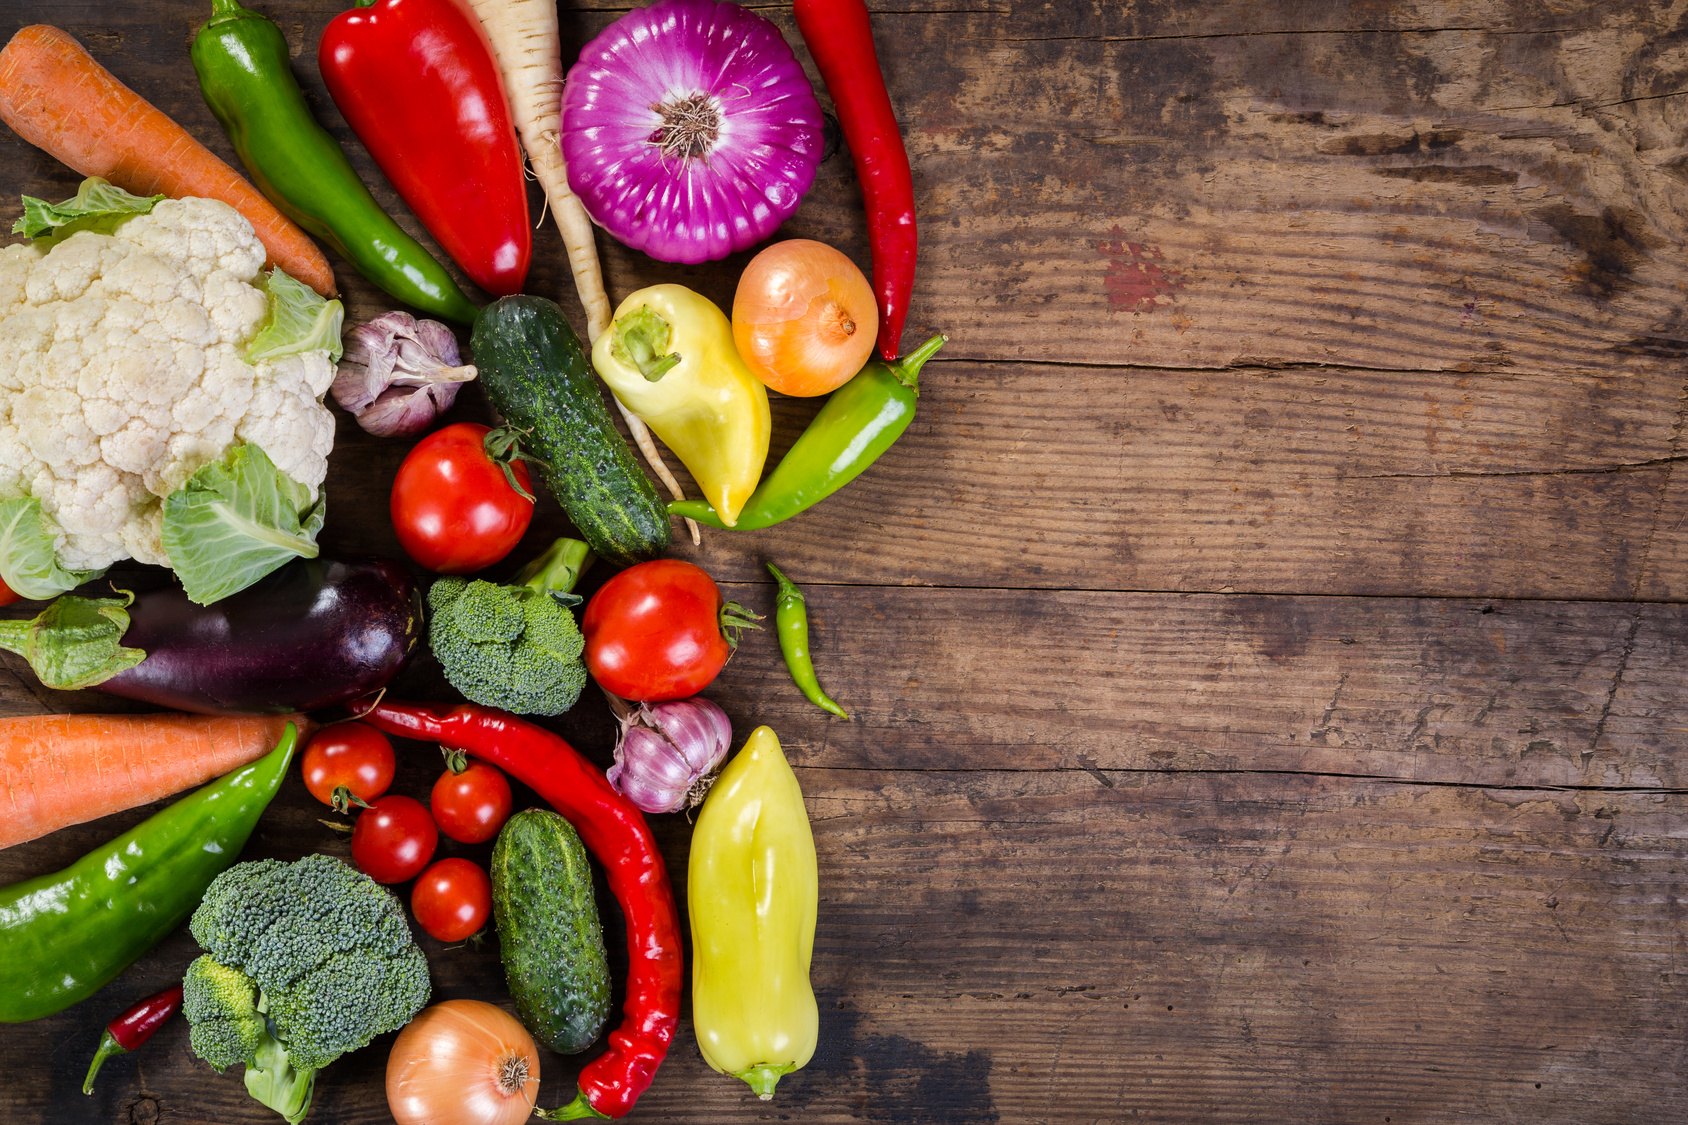 Weekly Organic Produce Sale - 5 deliveries a week - Availability can vary by locationShop featured, select seasonal produce from over a dozen local farms. Weekly sale begins every Tuesday!Check out the sale hereView free recipes here